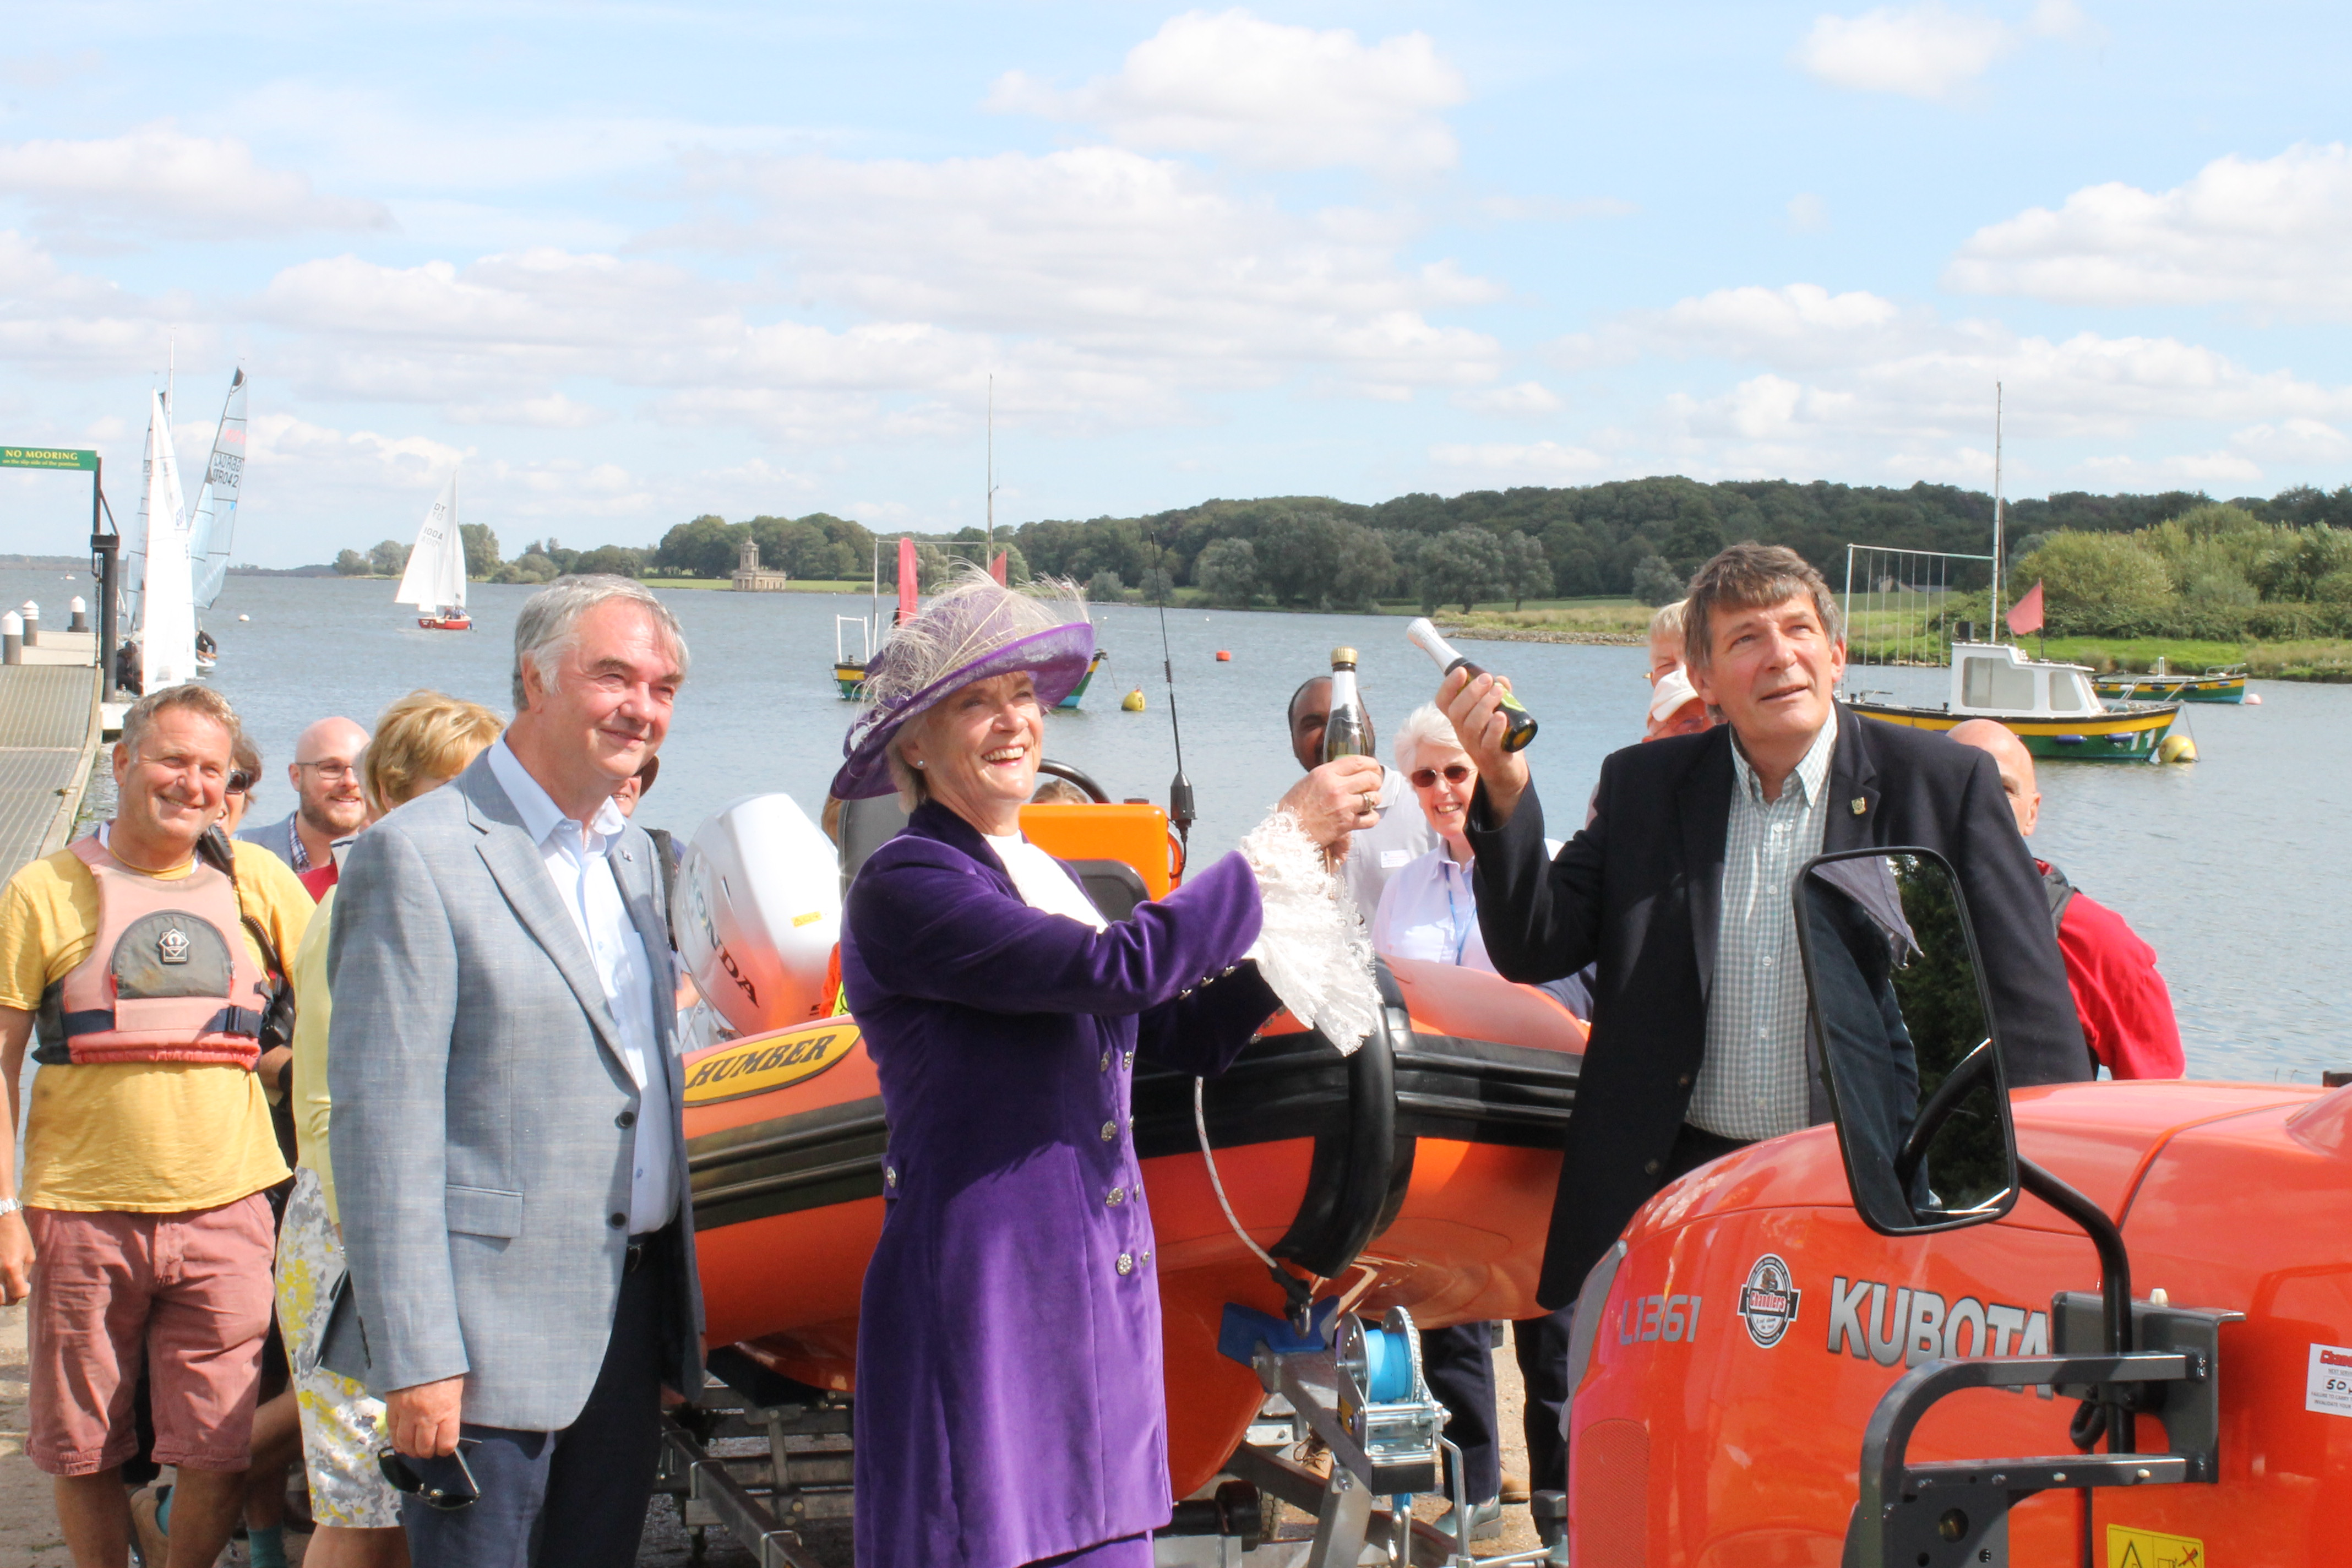 Rutland Sailability celebrates growing service after purchase of new safety boat thanks to £23,400 grant